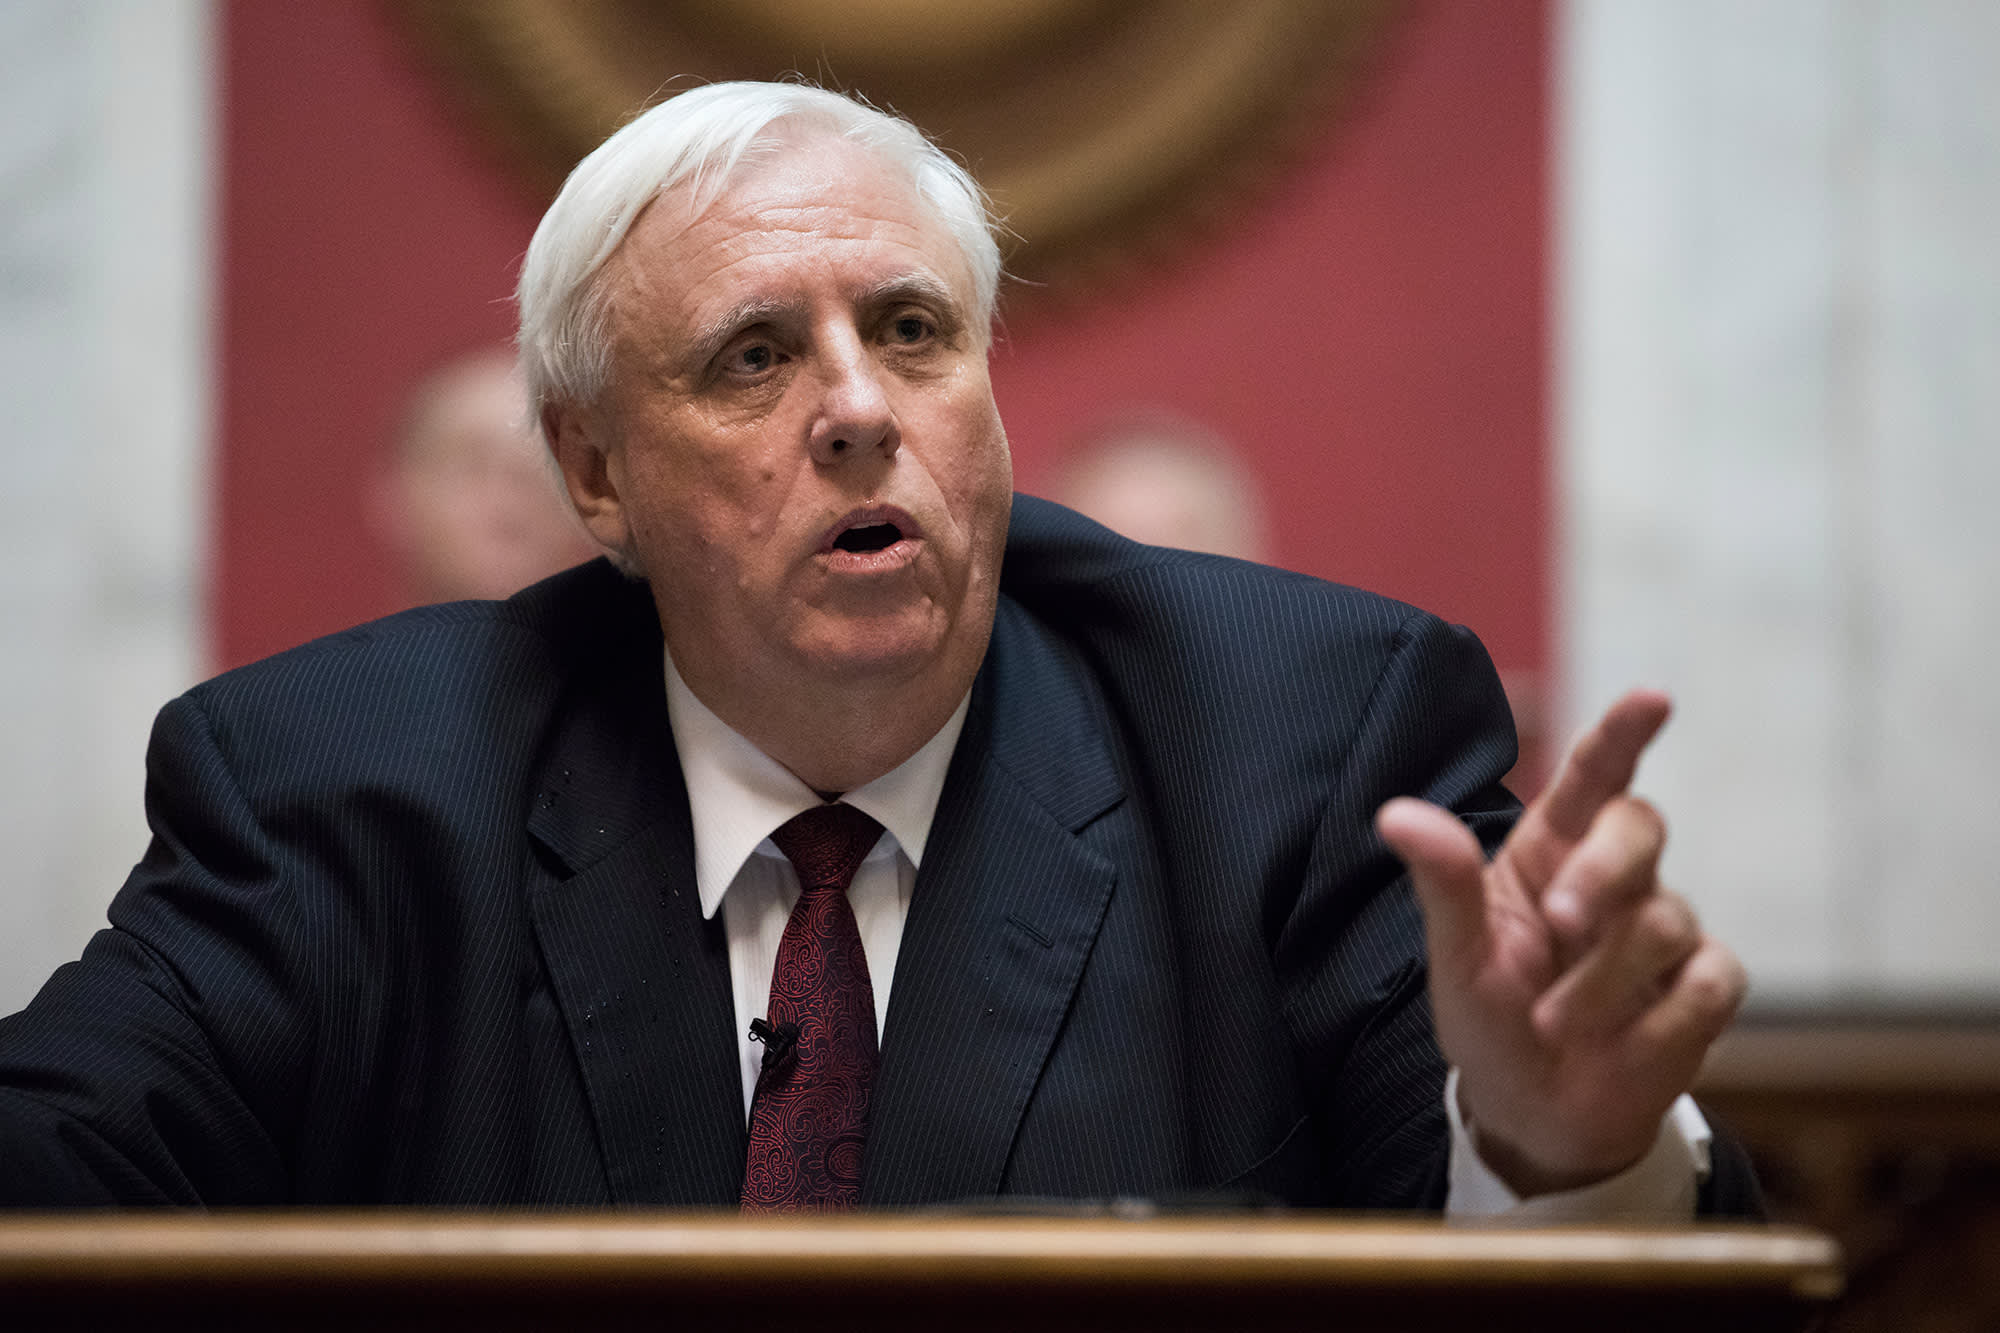 West Virginia governor claims if his state had enough doses by Valentine's Day, 'every person over 65 would be vaccinated'